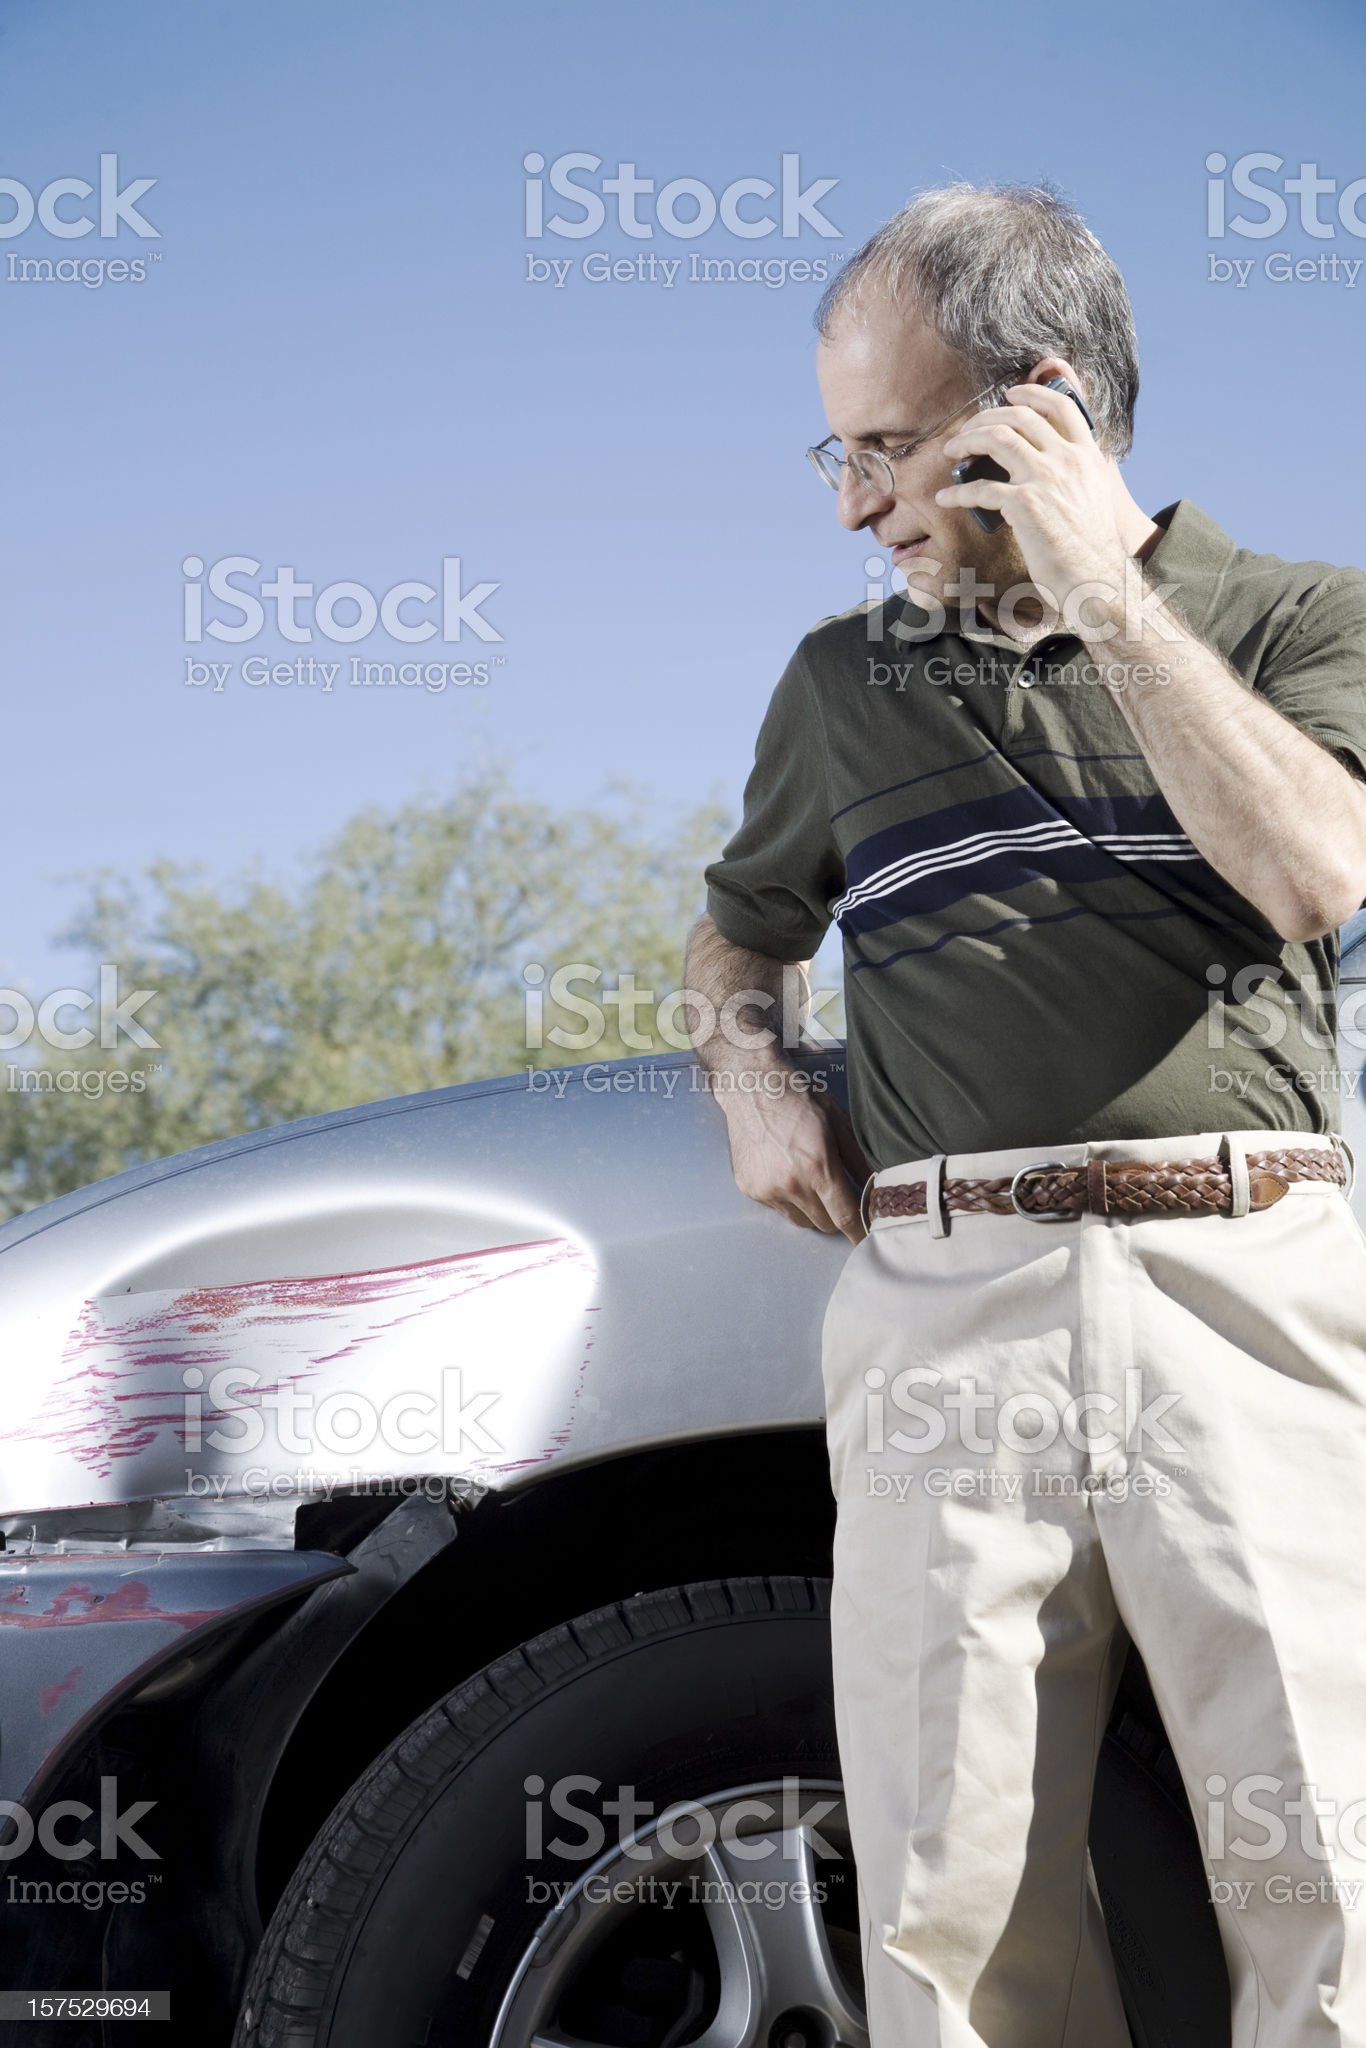 Accident royalty-free stock photo